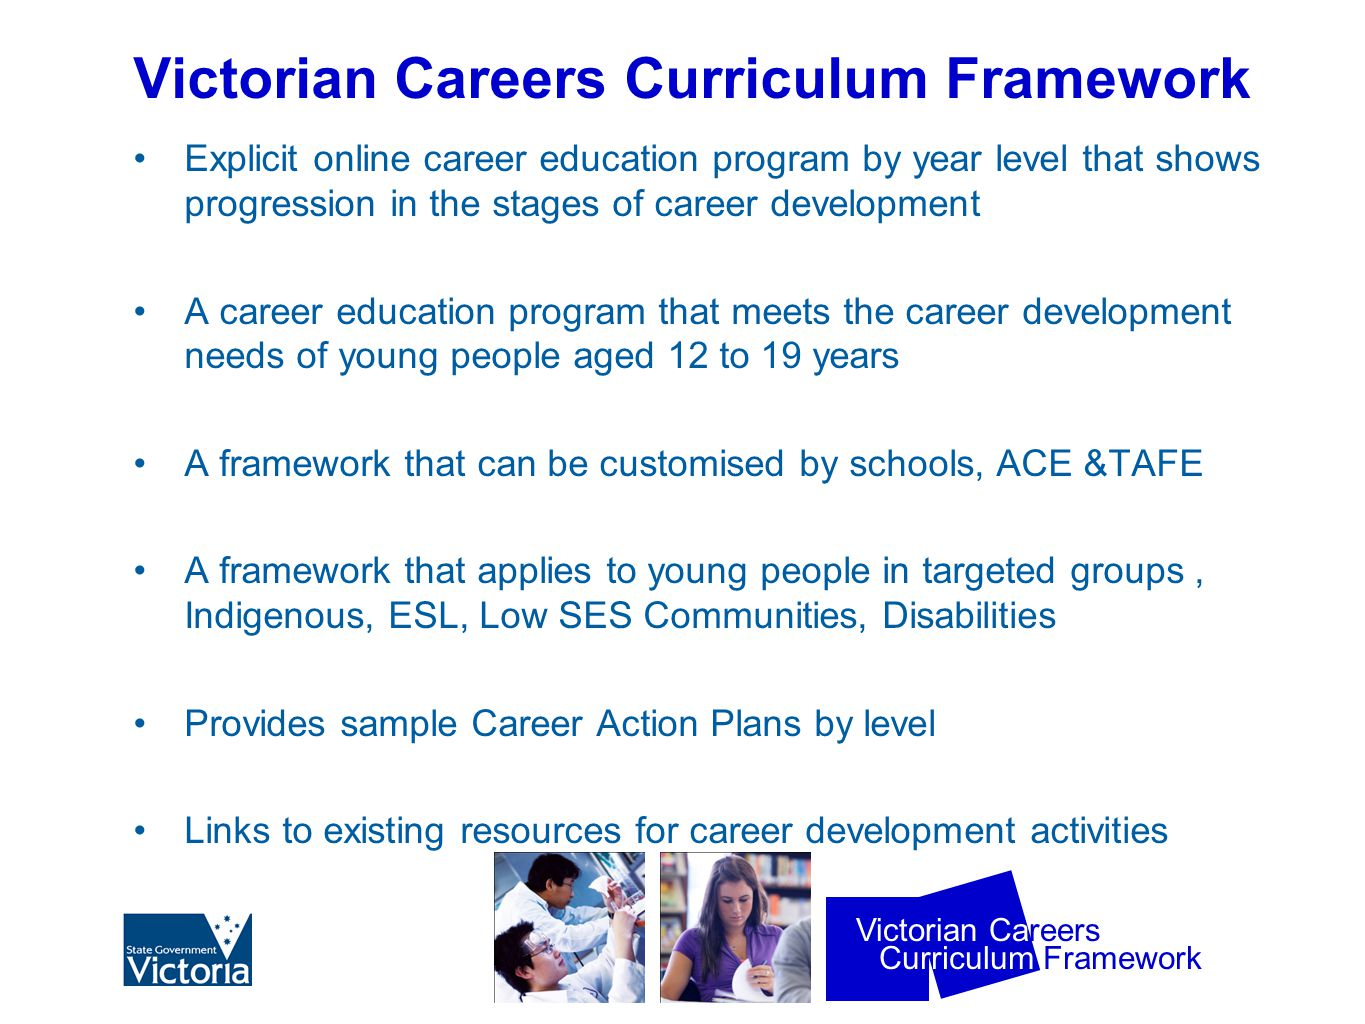 Curriculum Framework Victorian Careers Victorian Careers Curriculum Framework Explicit online career education program by year level that shows progression in the stages of career development A career education program that meets the career development needs of young people aged 12 to 19 years A framework that can be customised by schools, ACE &TAFE A framework that applies to young people in targeted groups, Indigenous, ESL, Low SES Communities, Disabilities Provides sample Career Action Plans by level Links to existing resources for career development activities